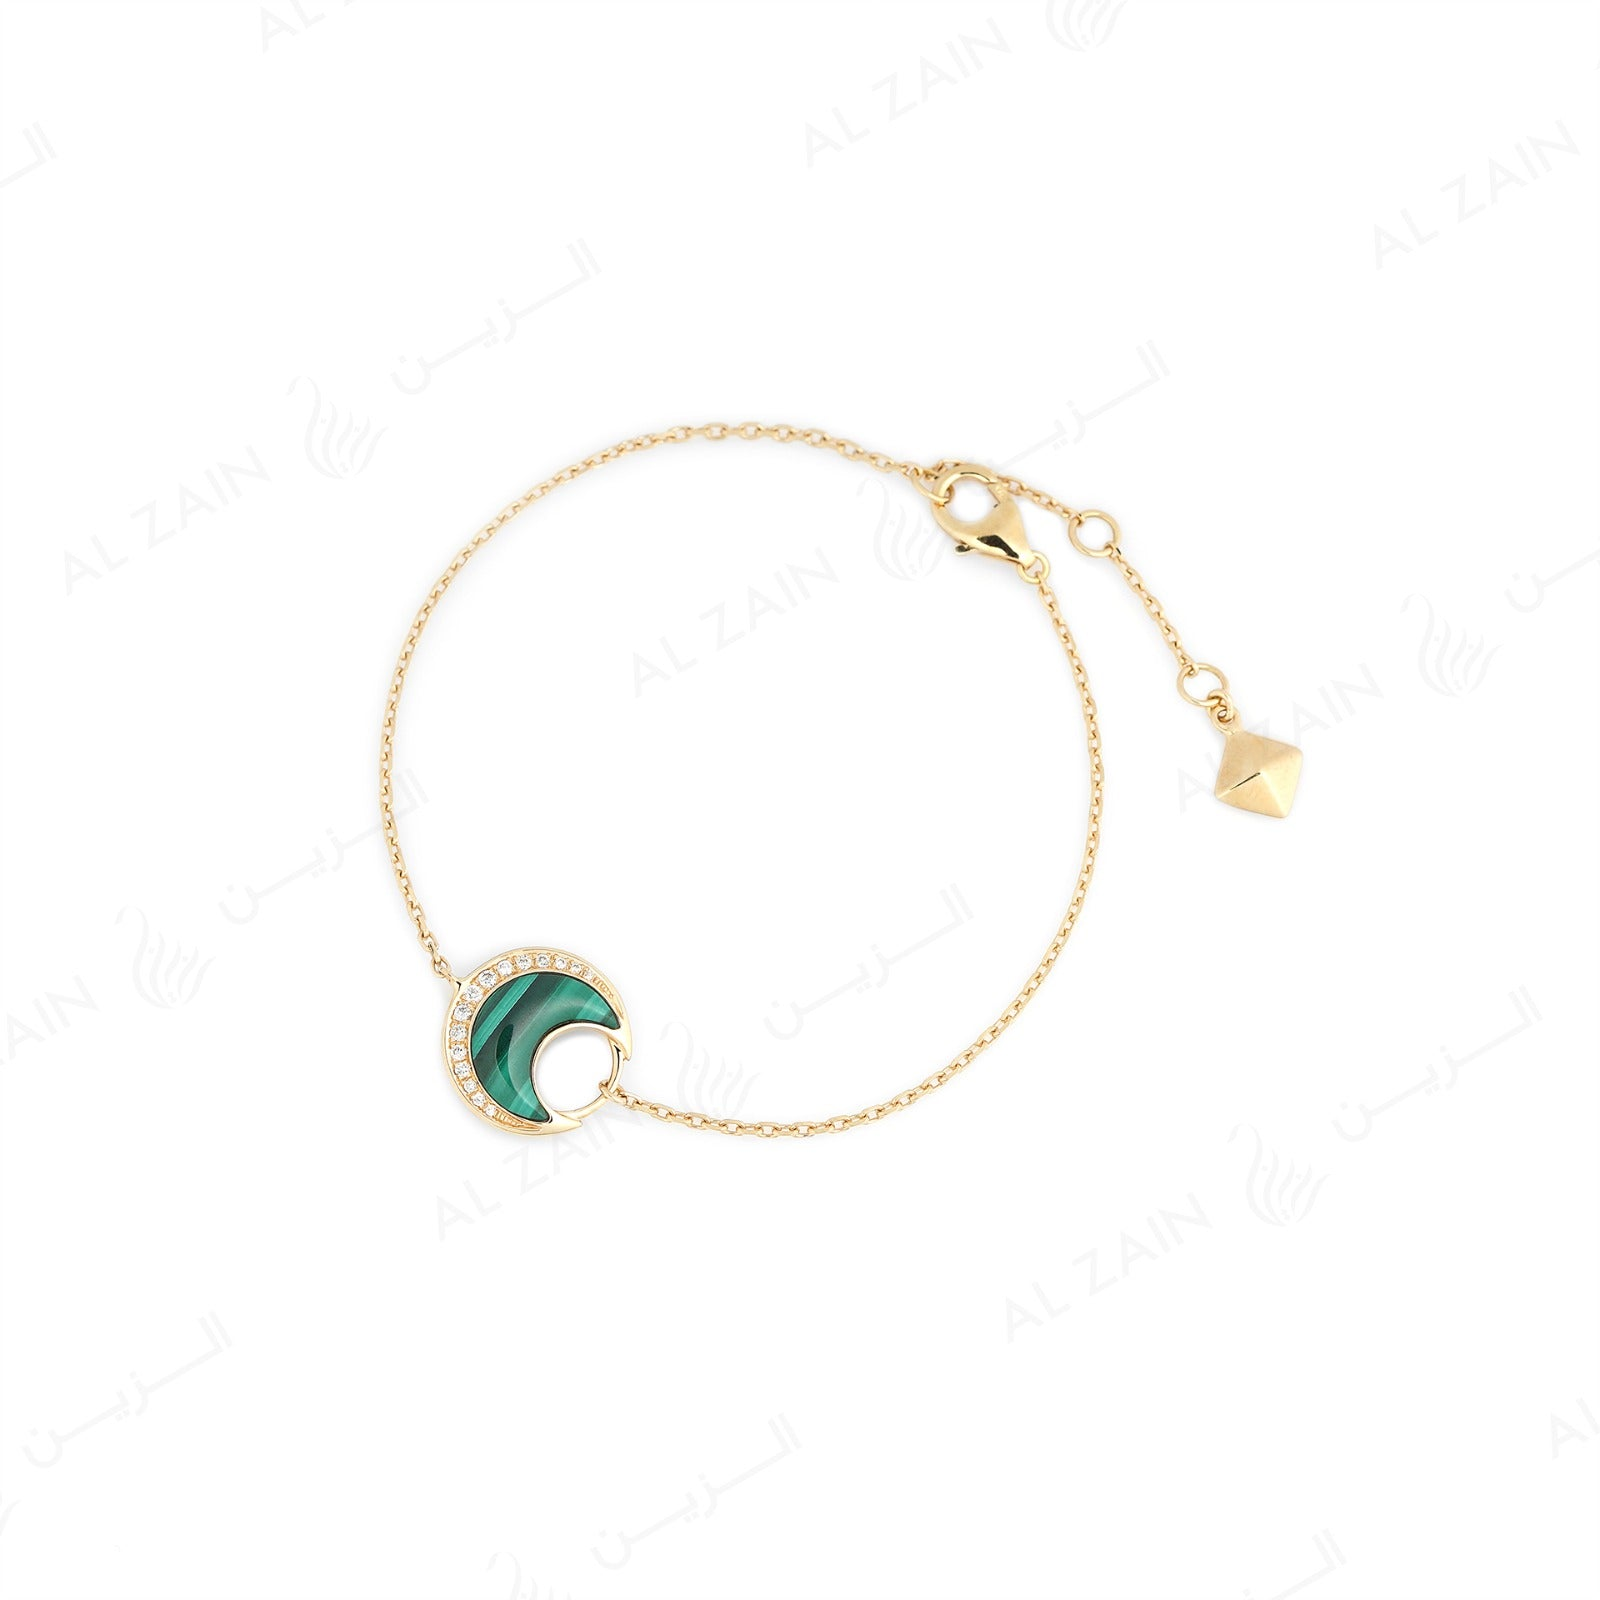 Al Hilal bracelet in yellow gold with malachite stone and diamonds - Al Zain Jewellery